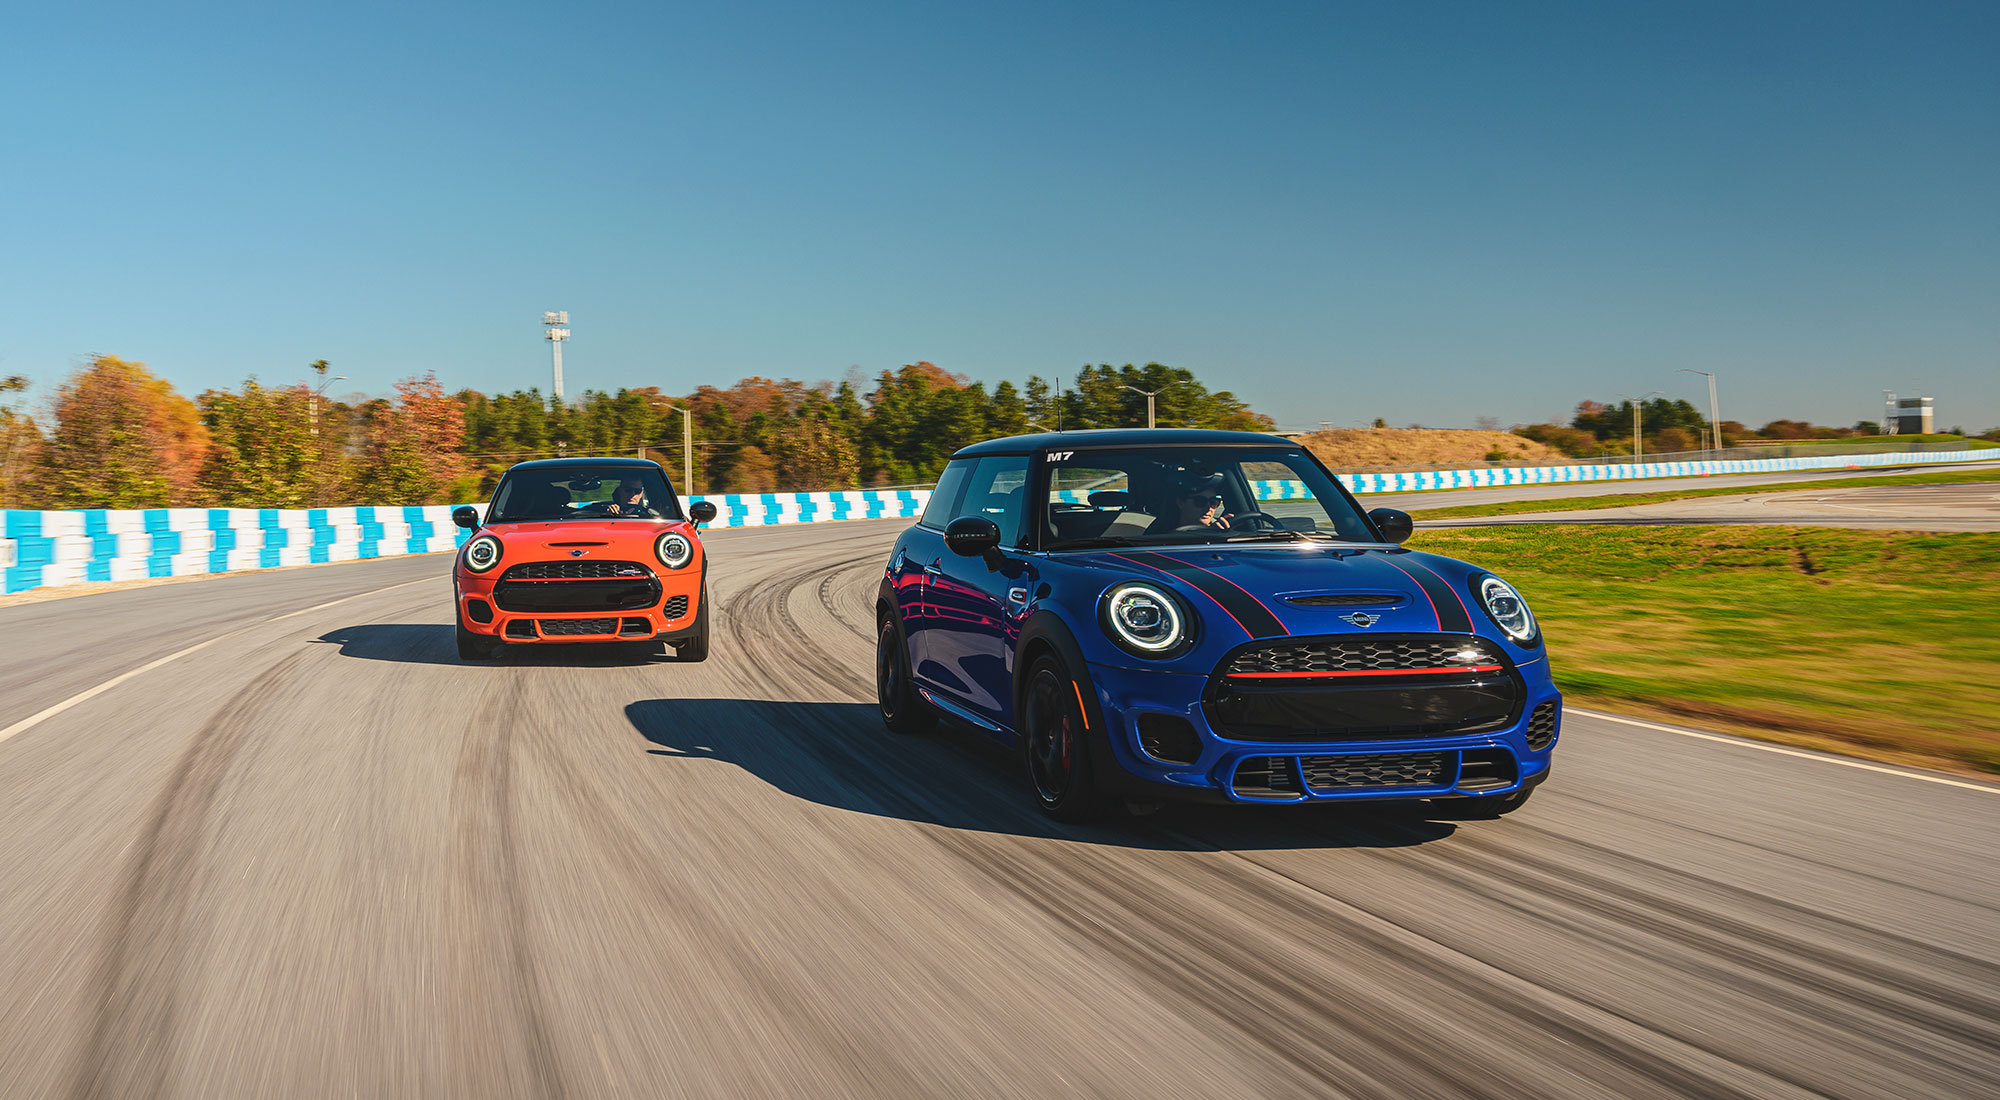 Shooting at the MINI Driving Experience